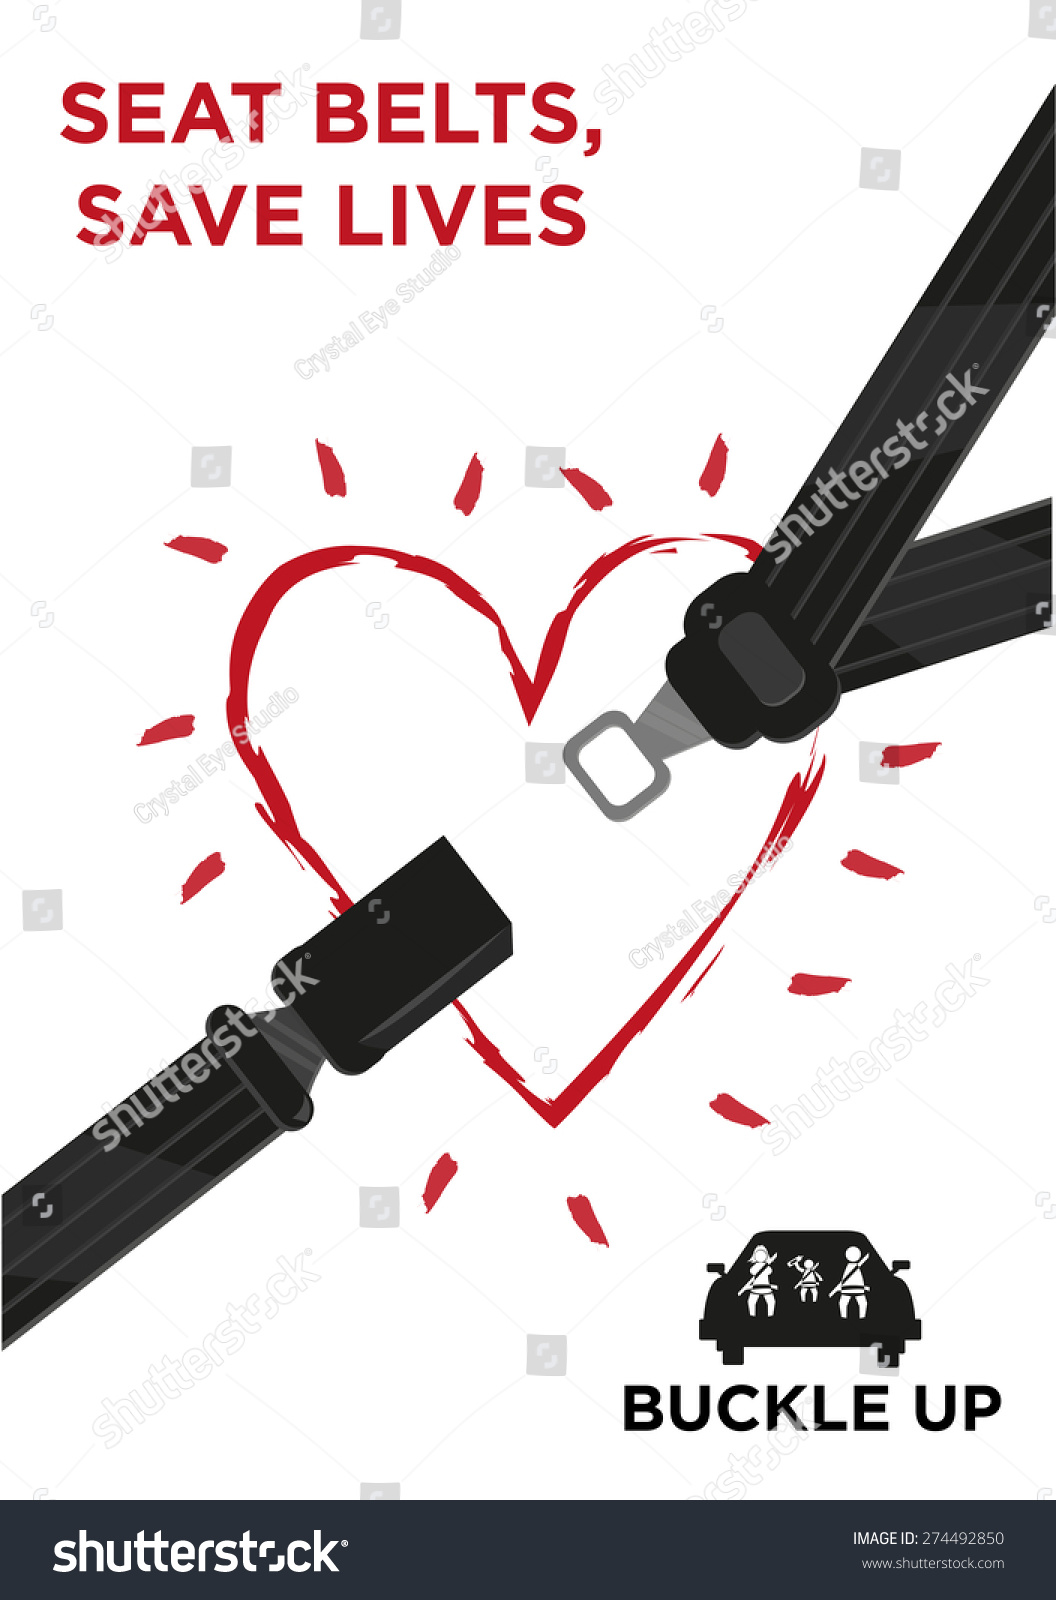 seat belt thesis statement Persuasive speech on wearing seat belt do you know that every hour someone dies in crash simply from not buckling his or her seat belt and you can be a victim if you don't simple buckle it when you get in your car thesis-statement.